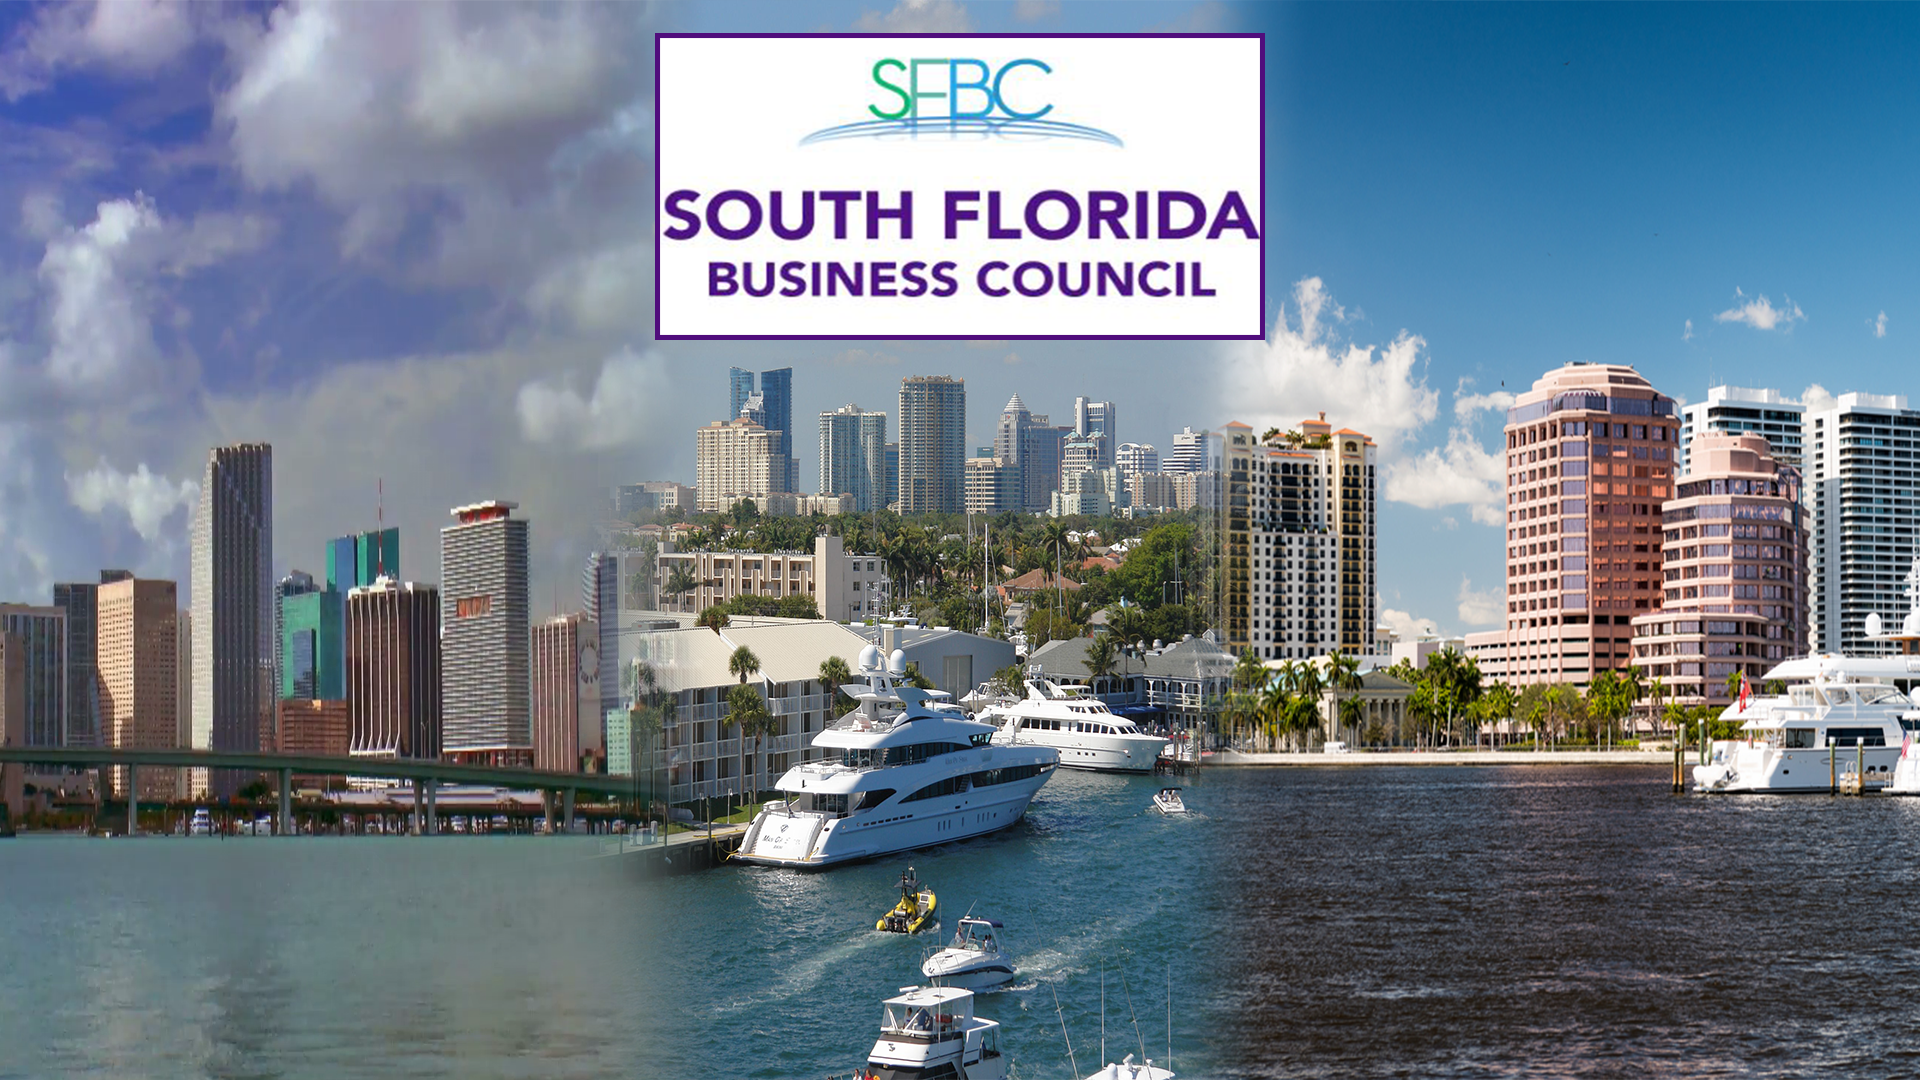 Ft  Lauderdale Chamber of Commerce - South Florida Business